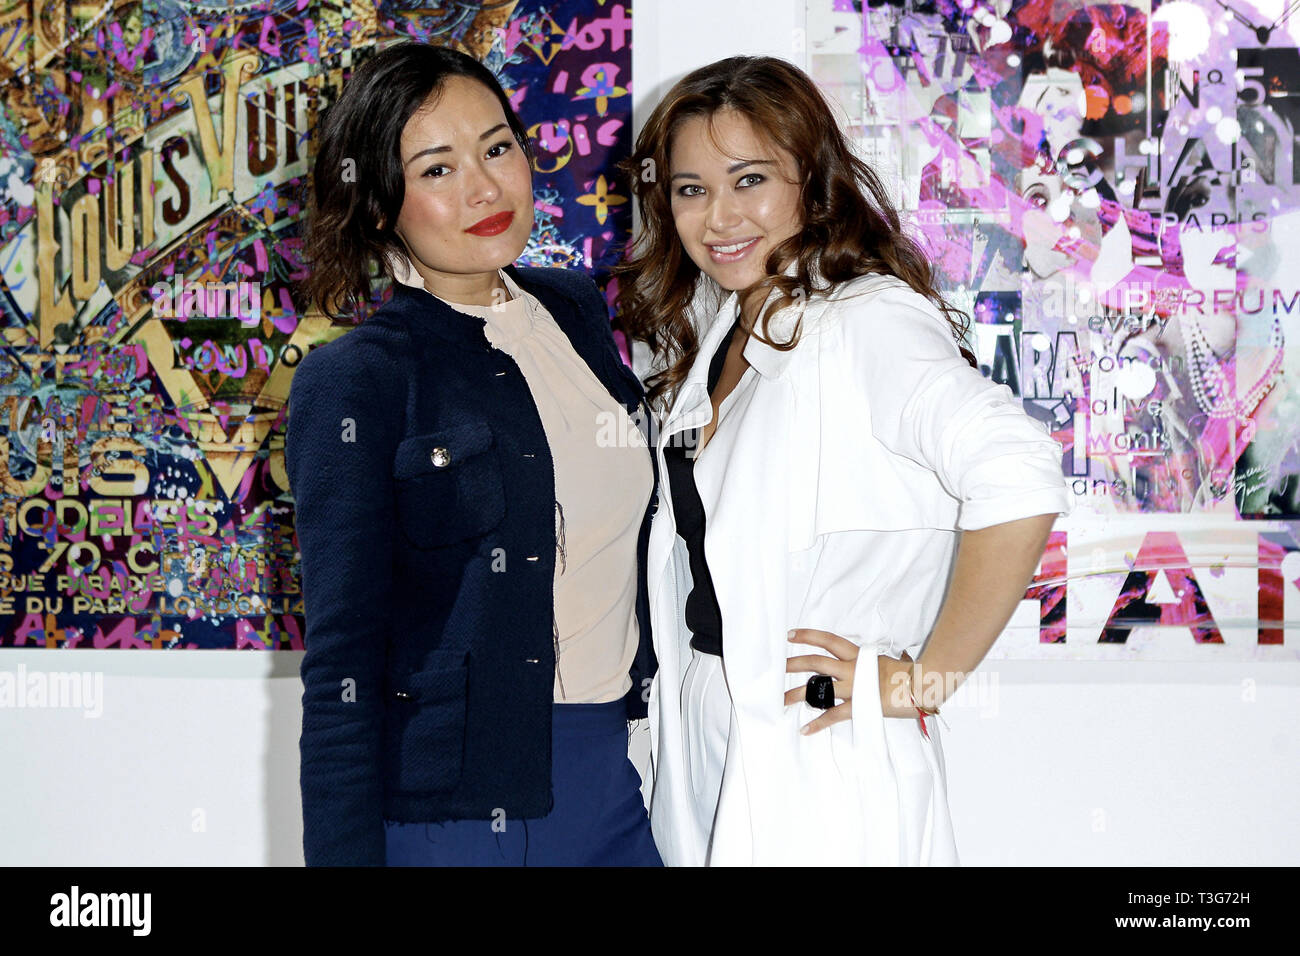 New York, USA. 21 May, 2015.  Kamilla Sun, and, Art Dealer, Sasha Rales at The Opening Night Of 'Paul Gerben: Mind Game' Private Art Event at Space 16 on May 21, 2015 in New York, NY. Credit: Steve Mack/S.D. Mack Pictures/Alamy - Stock Image